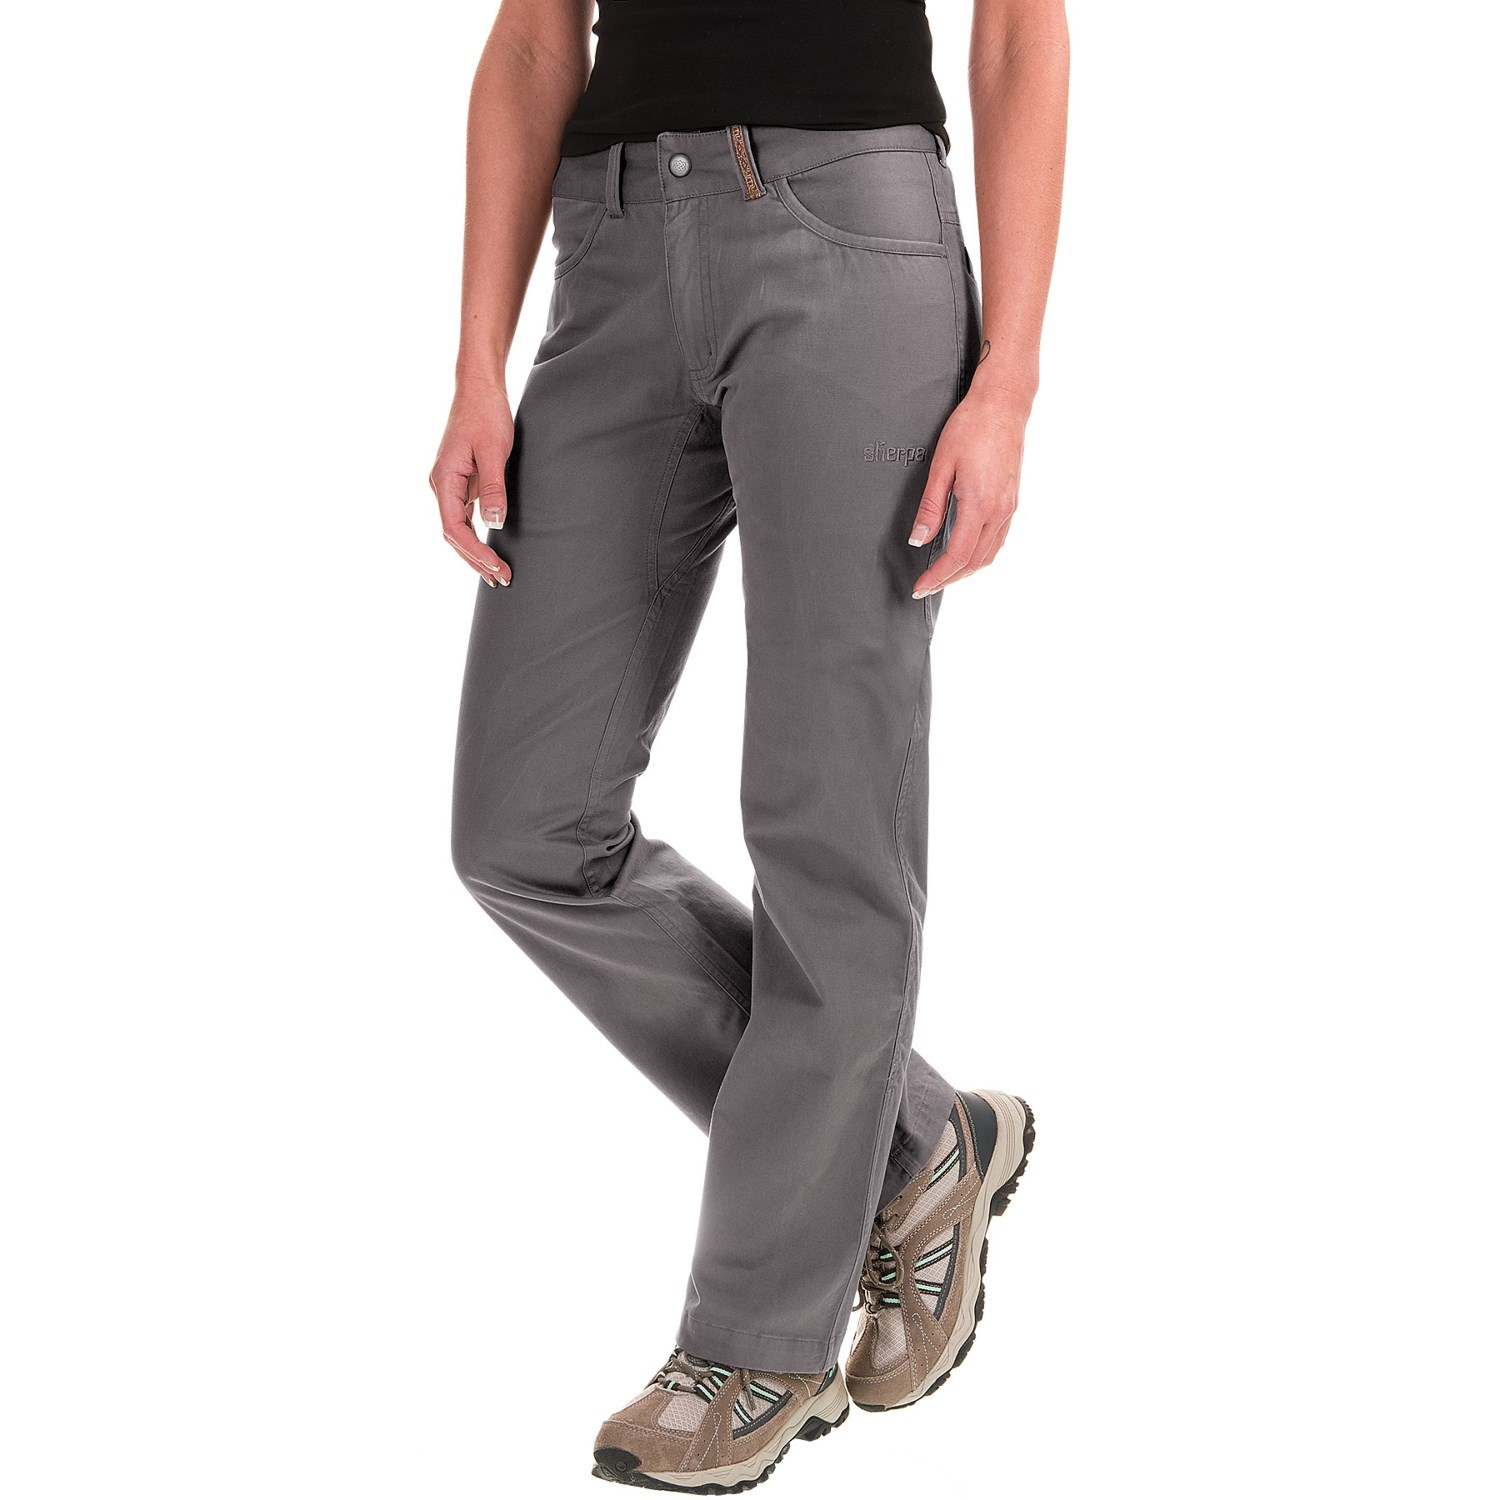 Sherpa Bhima Fitted Pants (For Women) - Save 64%